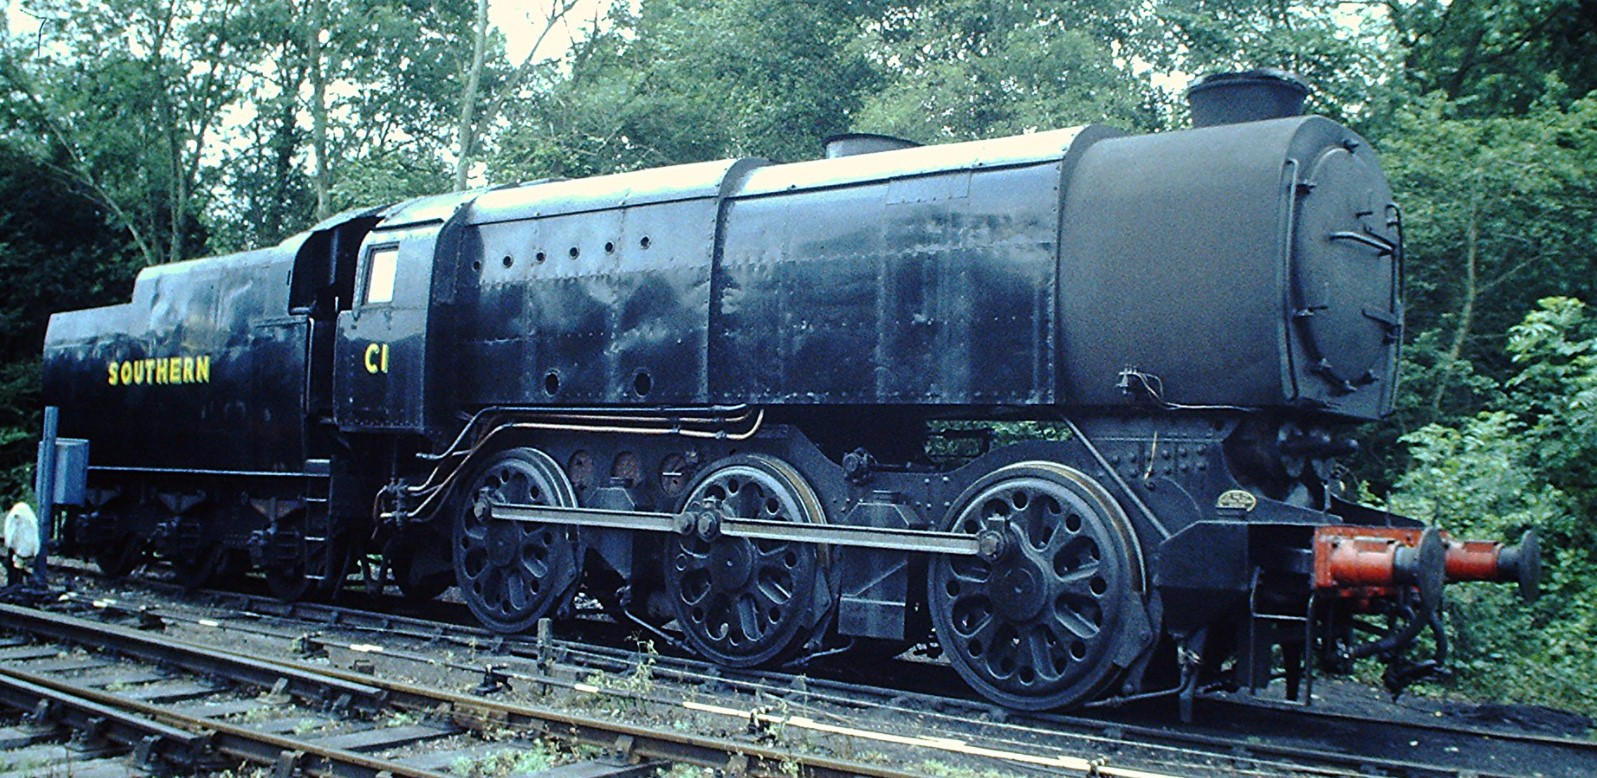 33001/ C1 at Sheffield Park on the Bluebell Railway in August 1999. ©Hugh Llewelyn